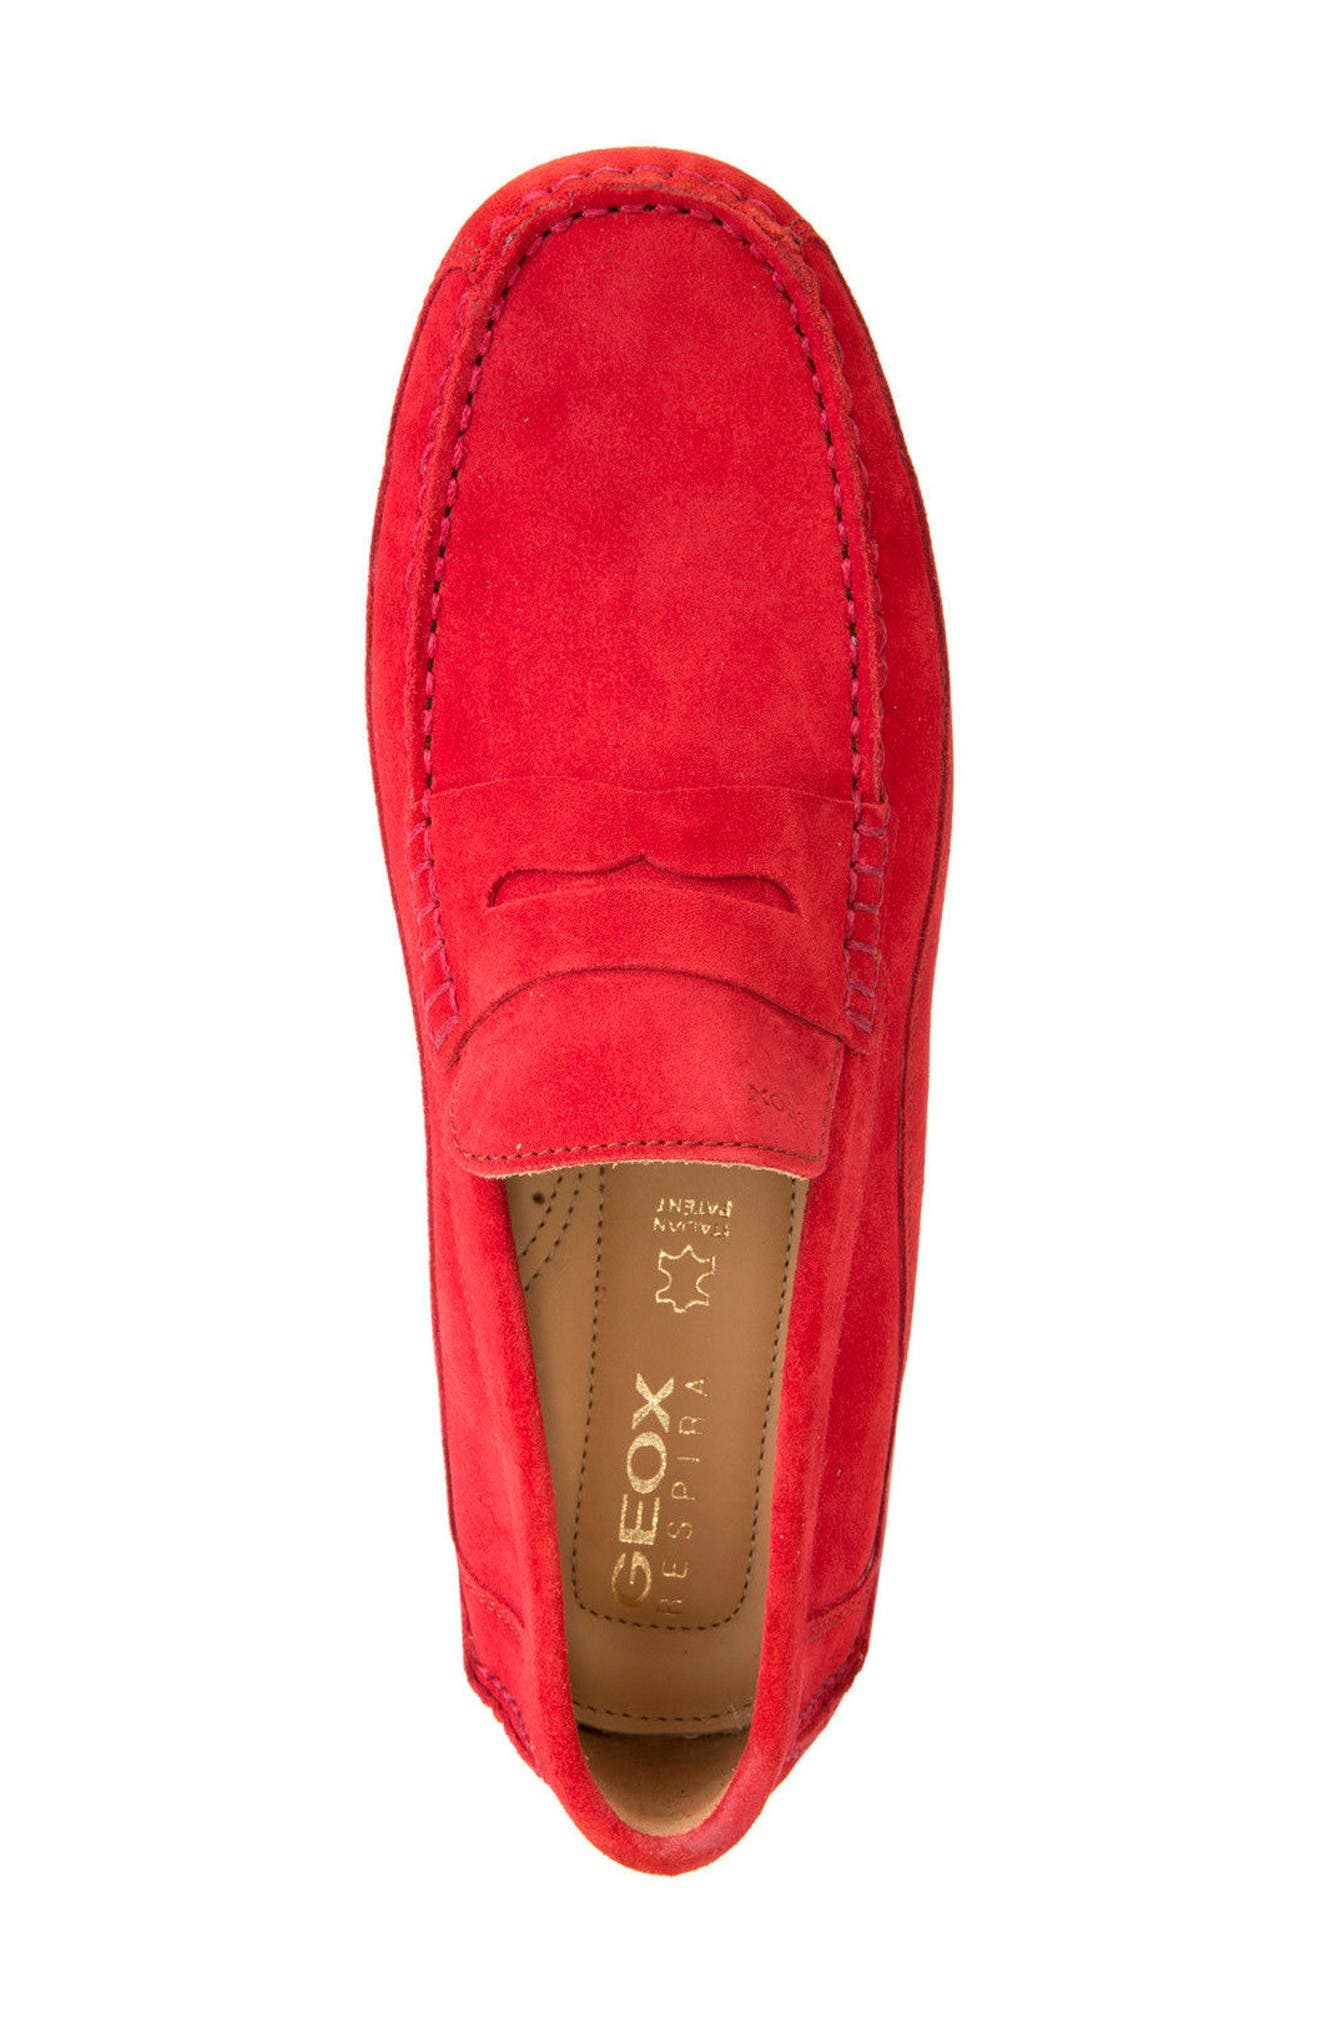 Melbourne 1 Driving Shoe,                             Alternate thumbnail 3, color,                             Red Suede